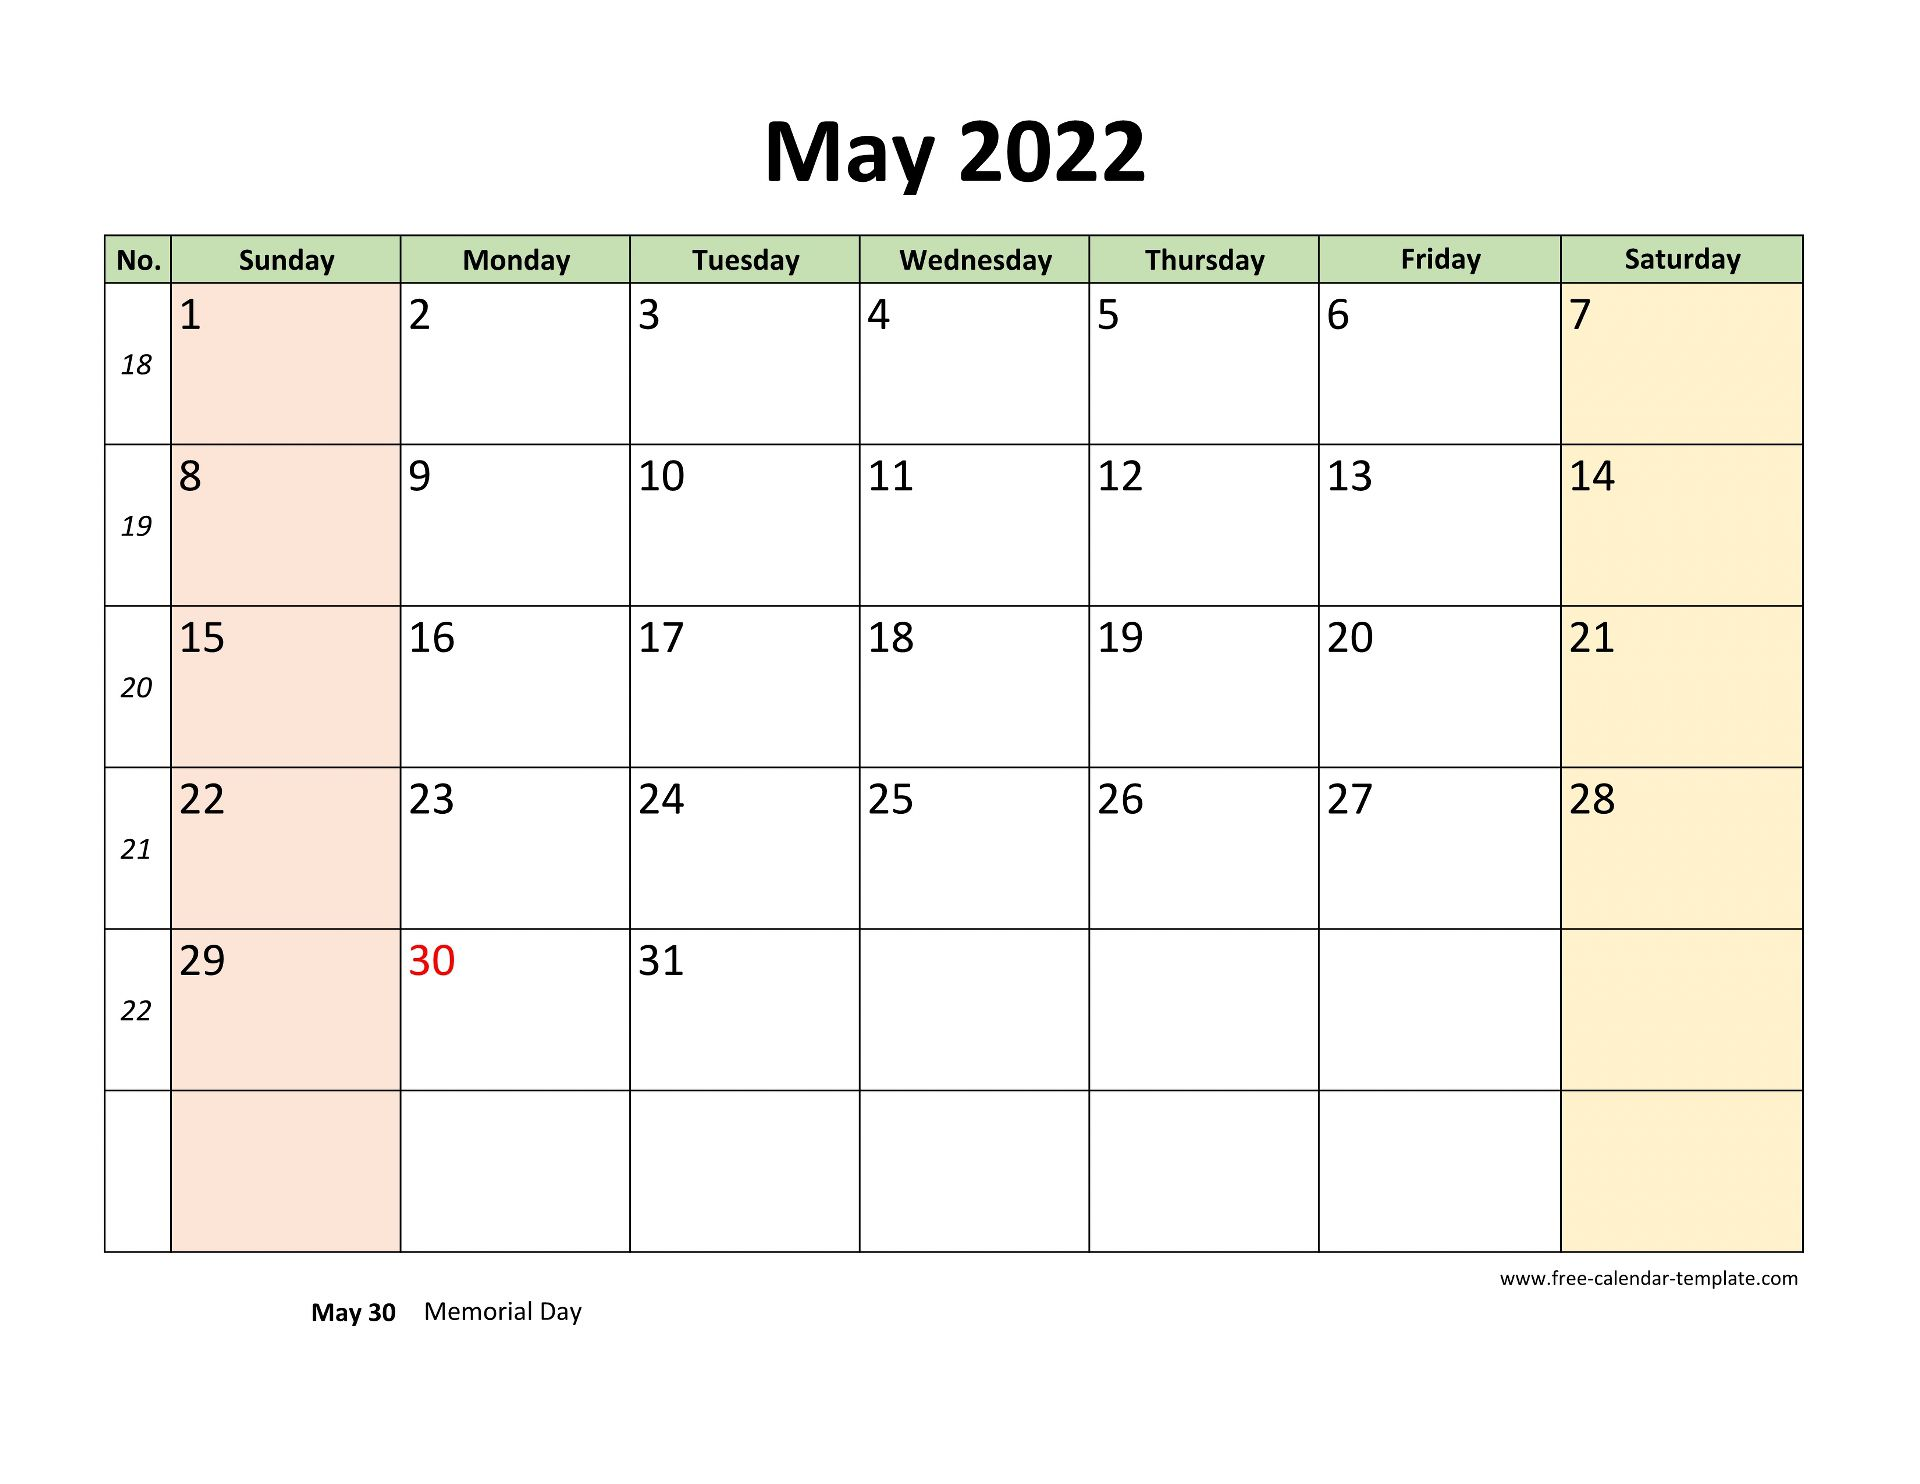 May 2022 Calendar Printable with coloring on weekend ...